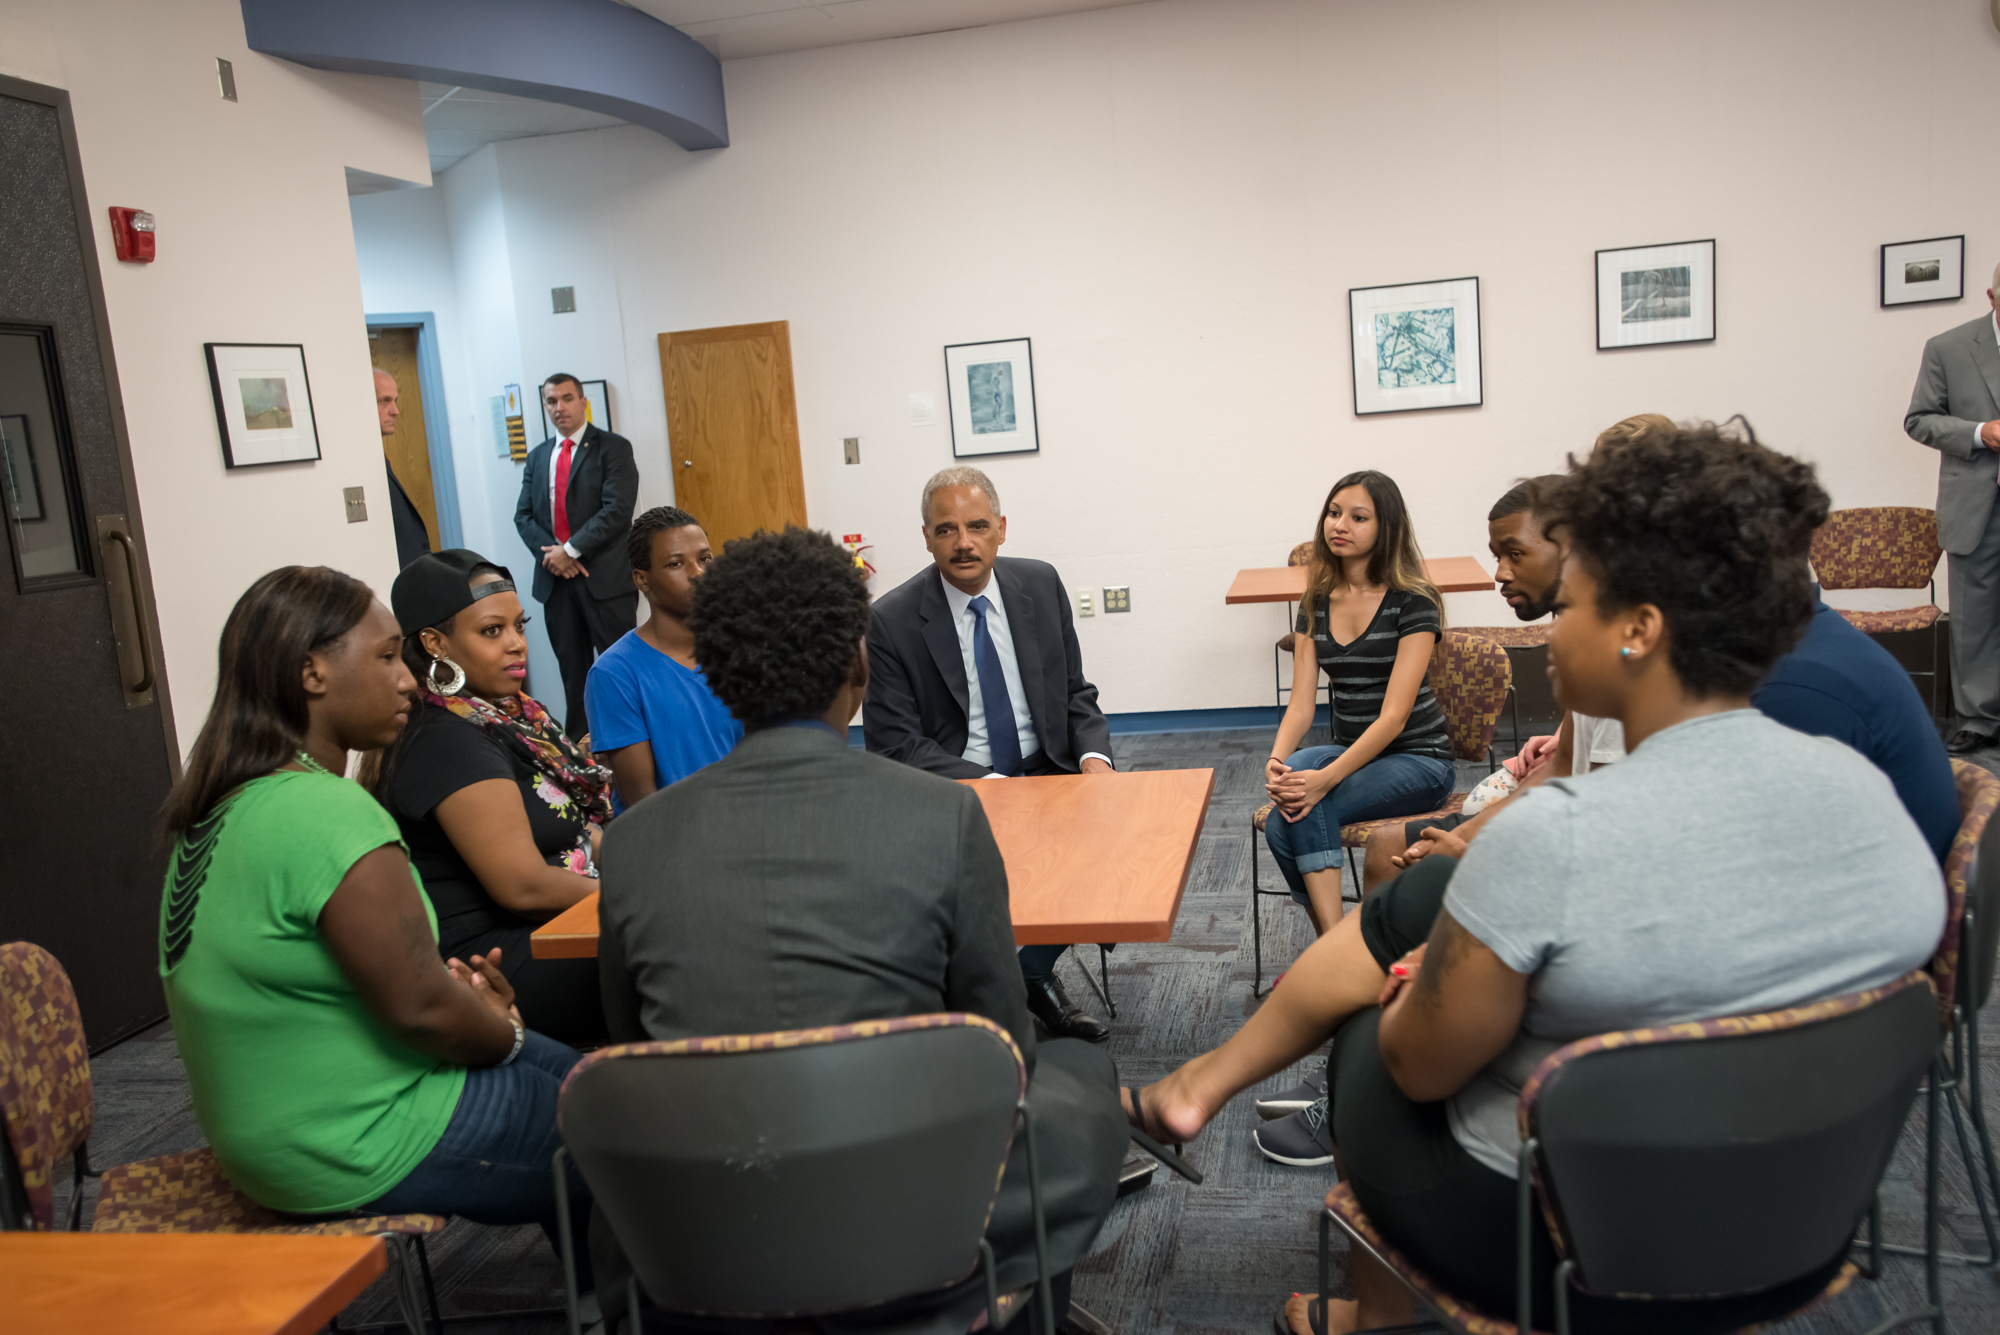 Attorney General Eric Holder meets with students at the Florissant Valley Community College in North St. Louis.